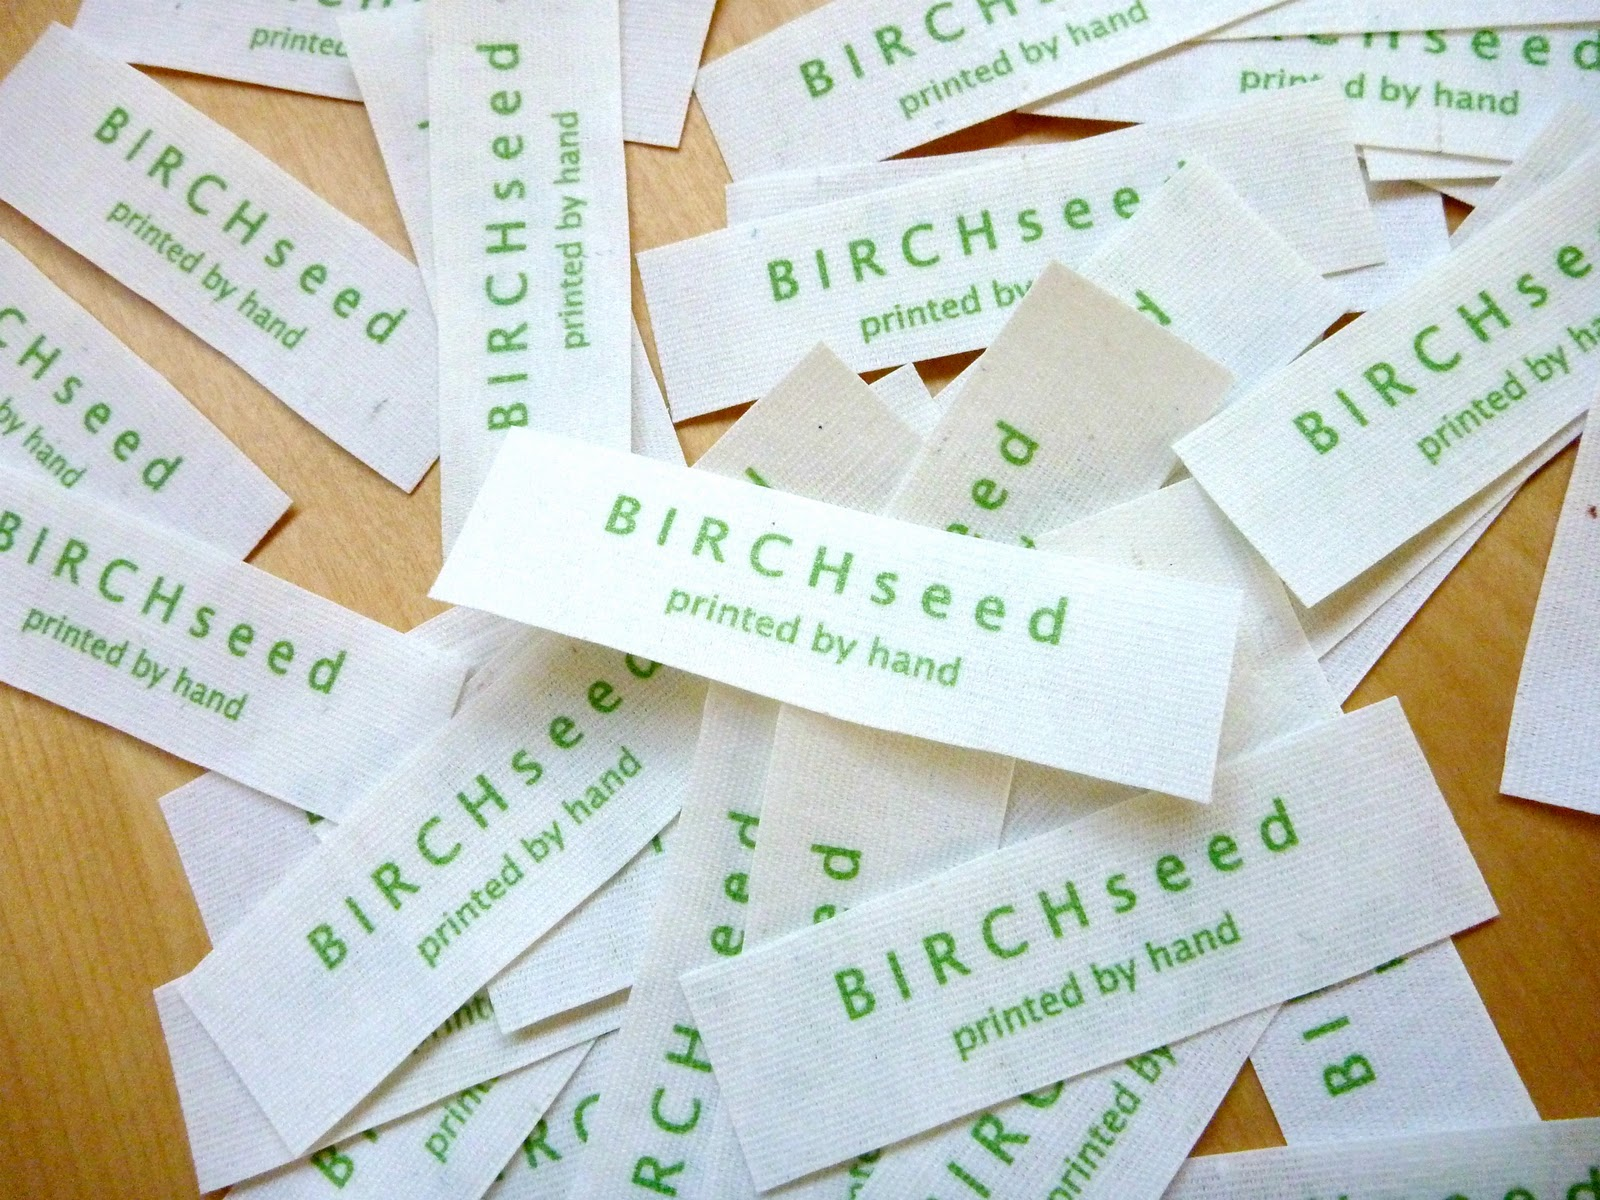 B i r c h s e e d printed by hand tutorial how to for How to sew labels on clothes